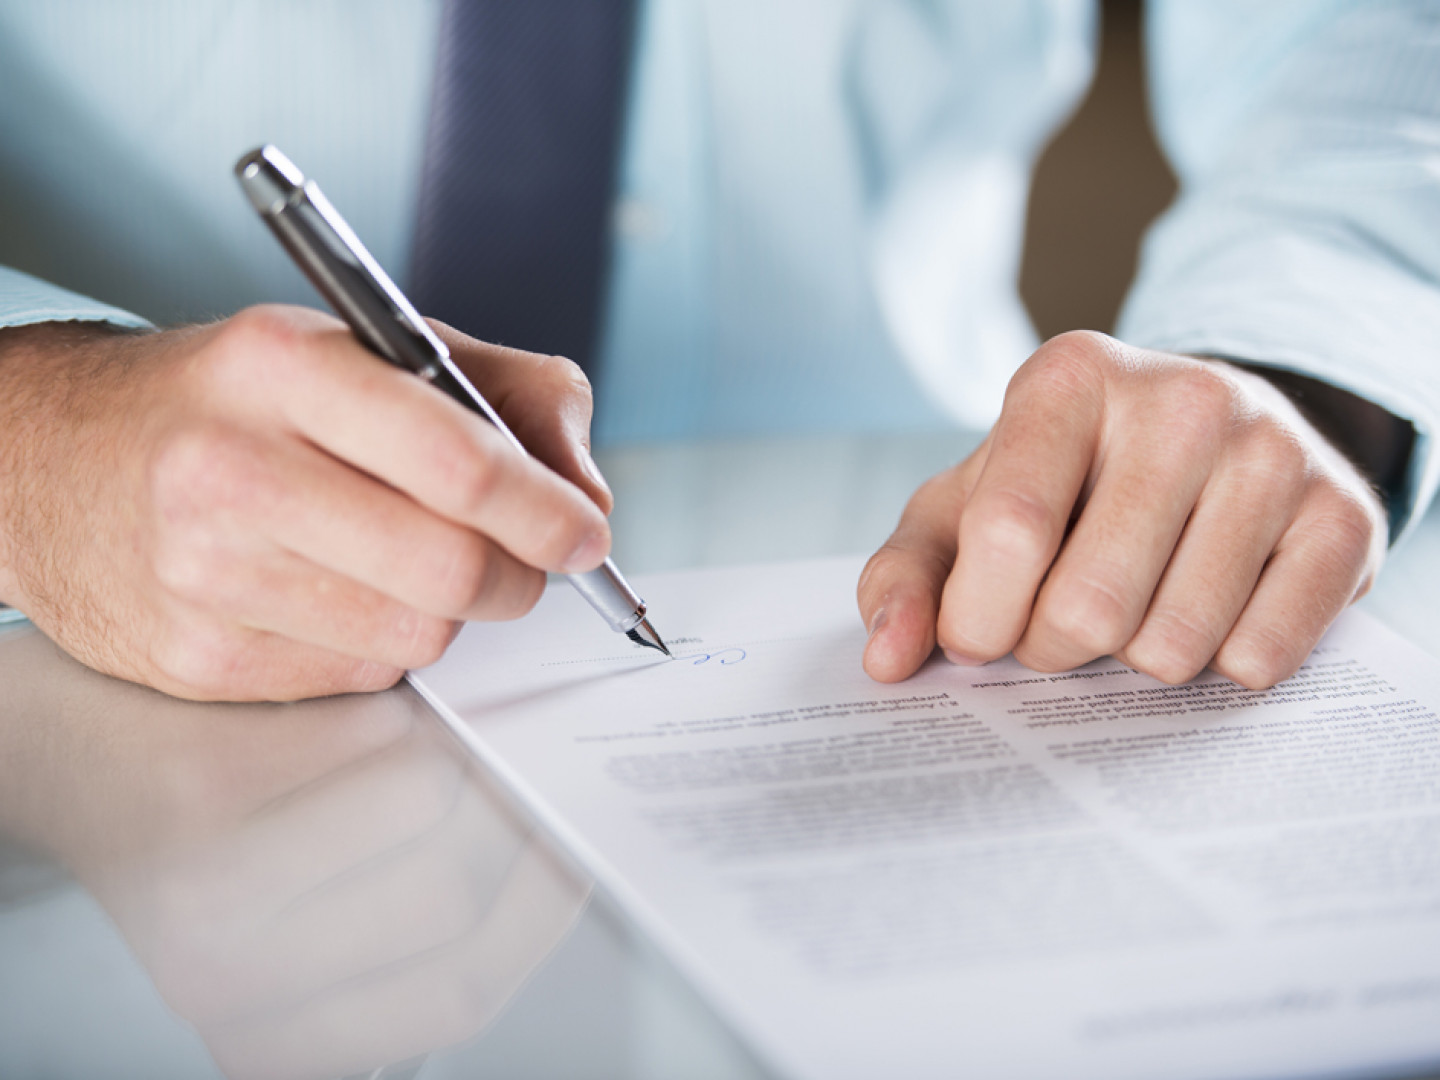 Work through probate disputes effectively